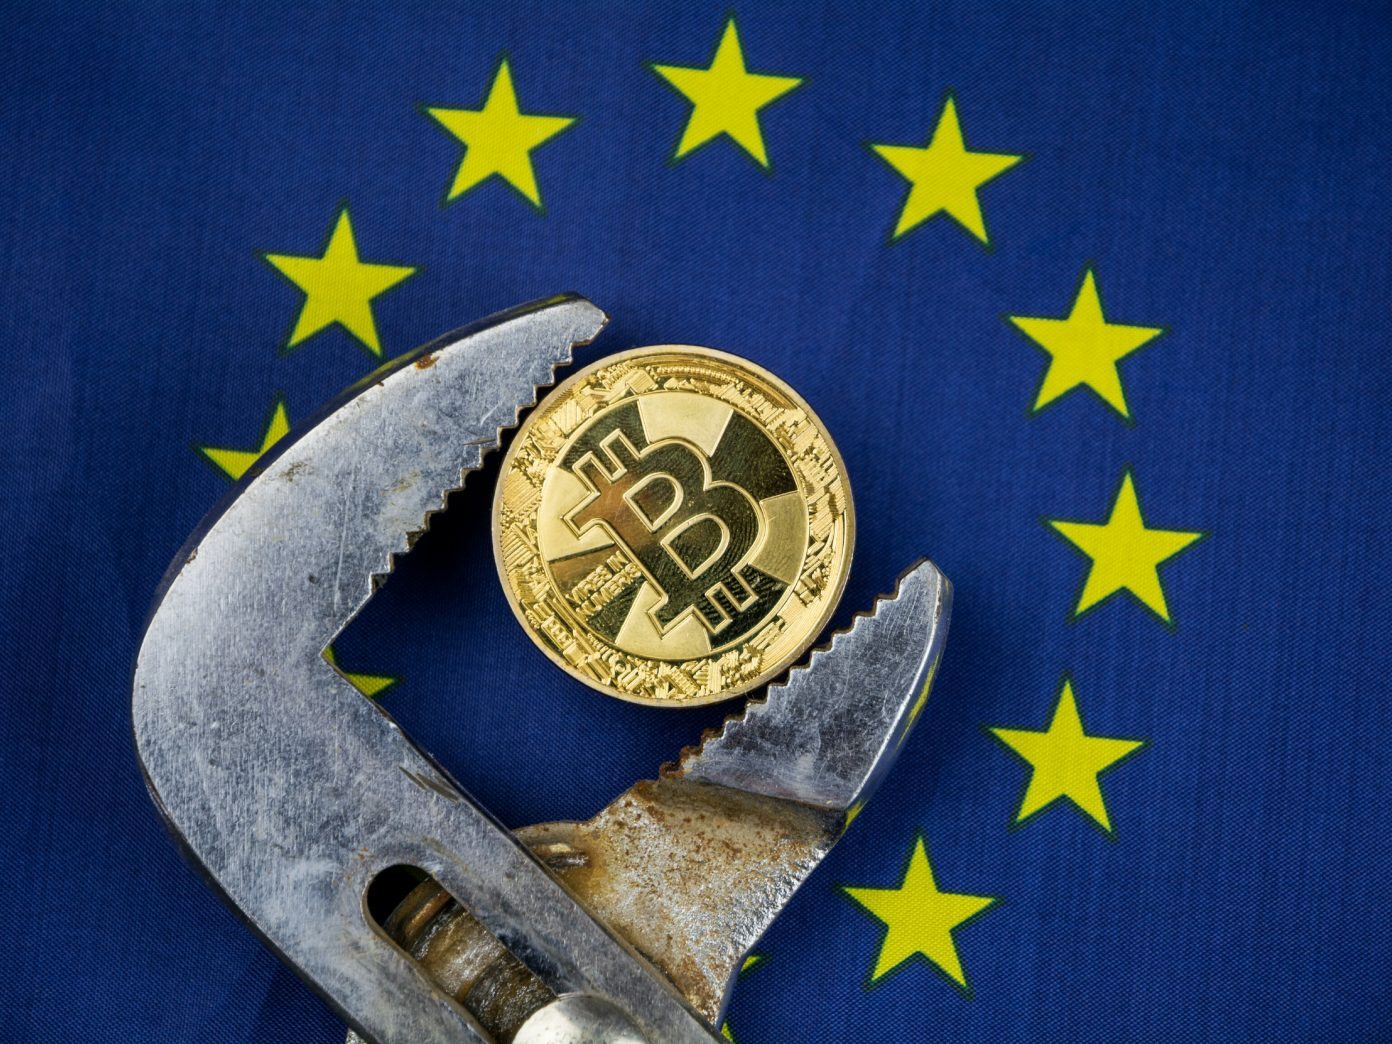 Europe's Regulatory Head Seeks Further Control of Crypto Assets